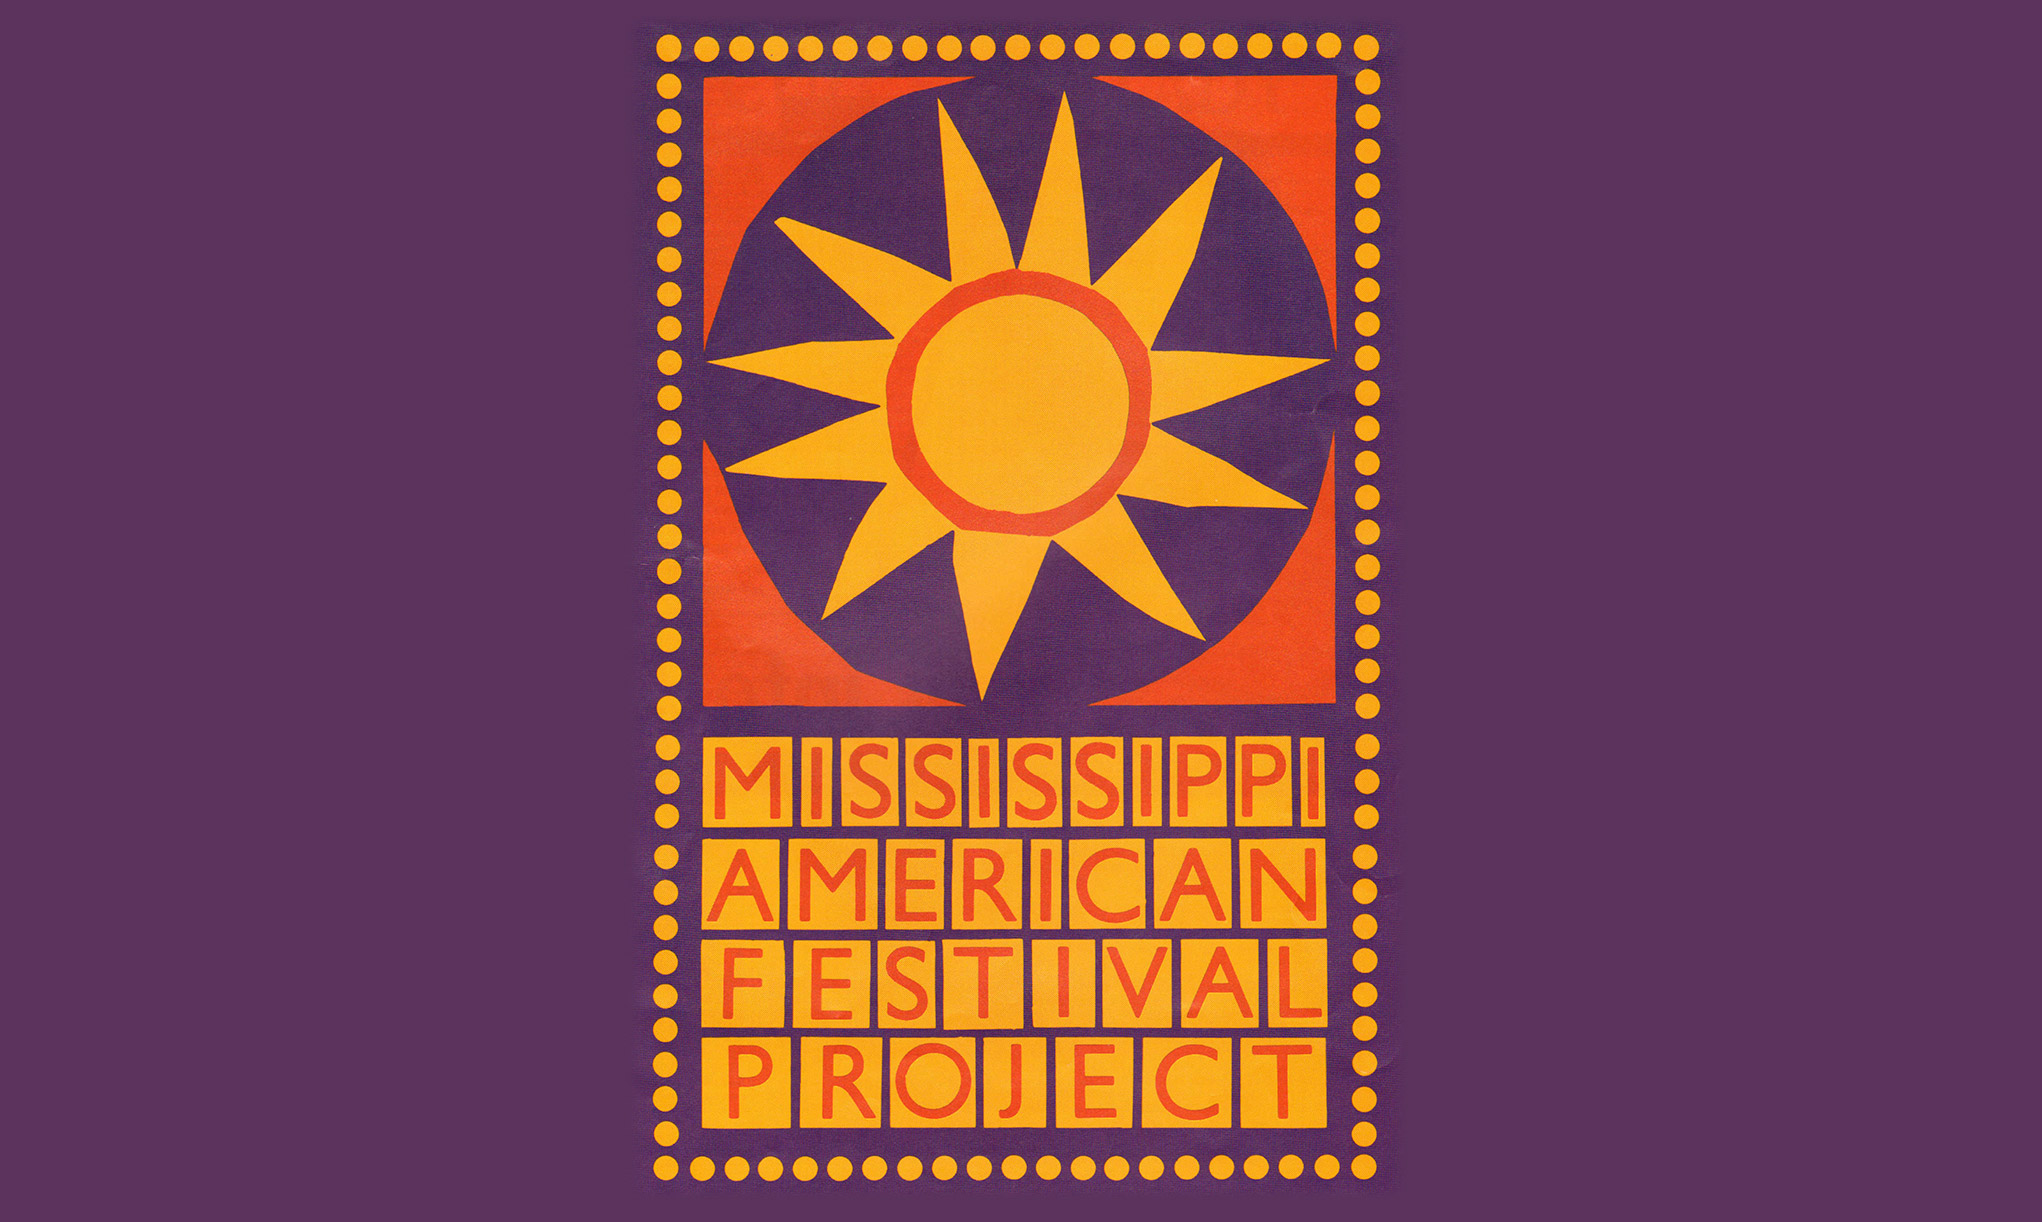 Mississippi American Festival Project